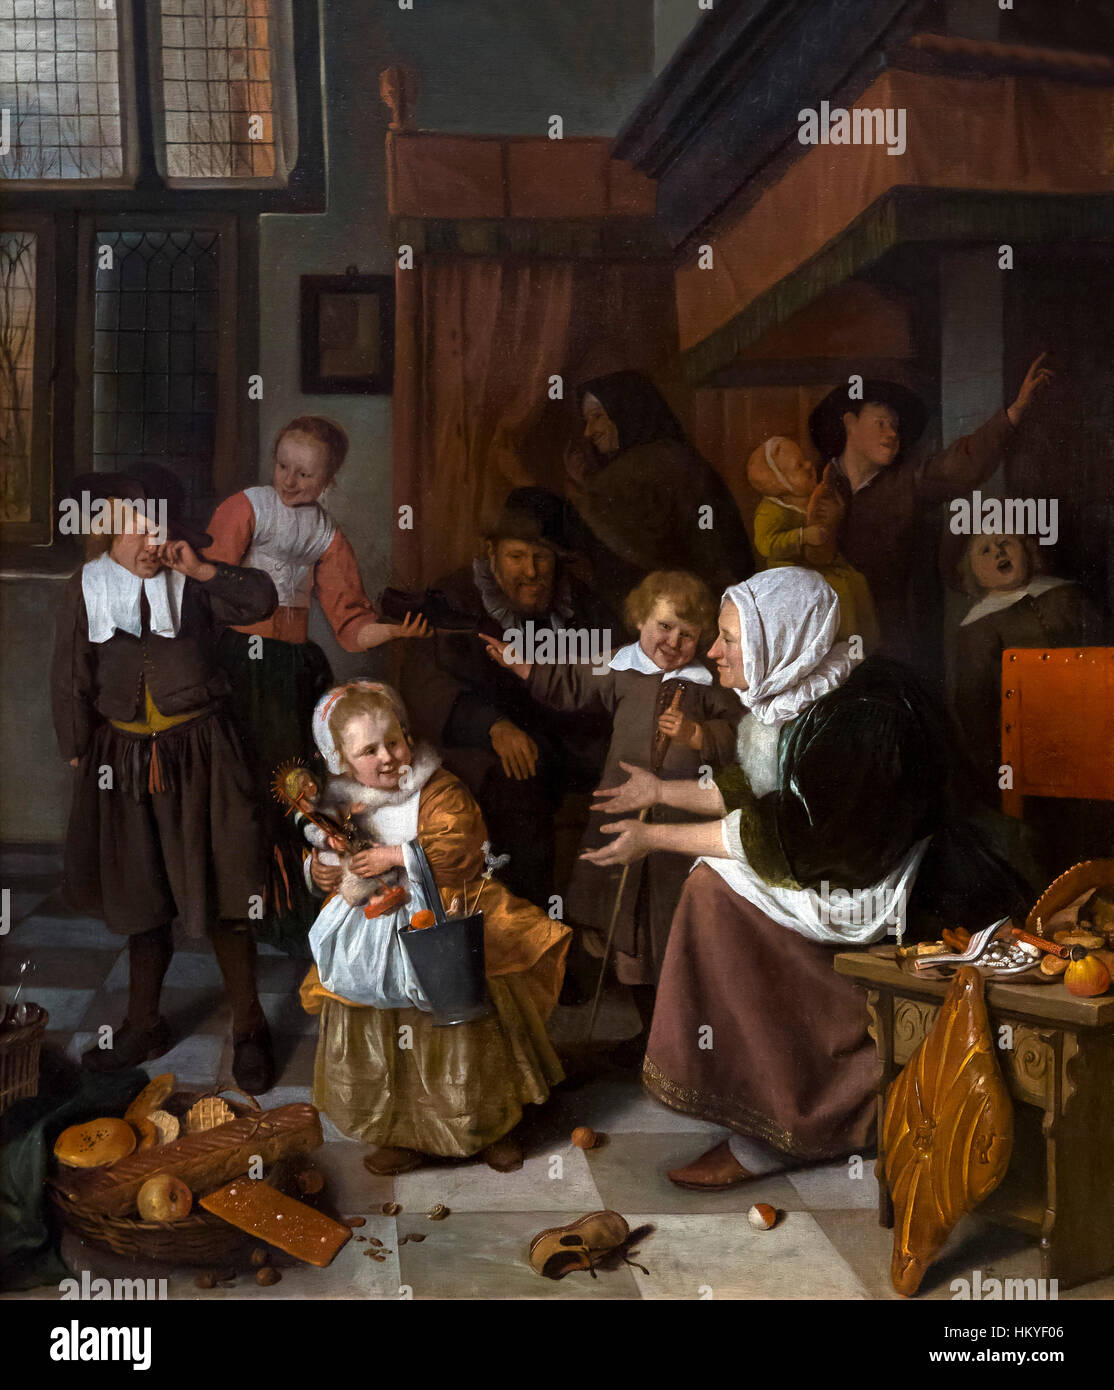 The Feast of St Nicholas, by Jan Steen, 1665-68, oil on canvas, Rijksmuseum, Amsterdam, Netherlands, Europe, - Stock Image